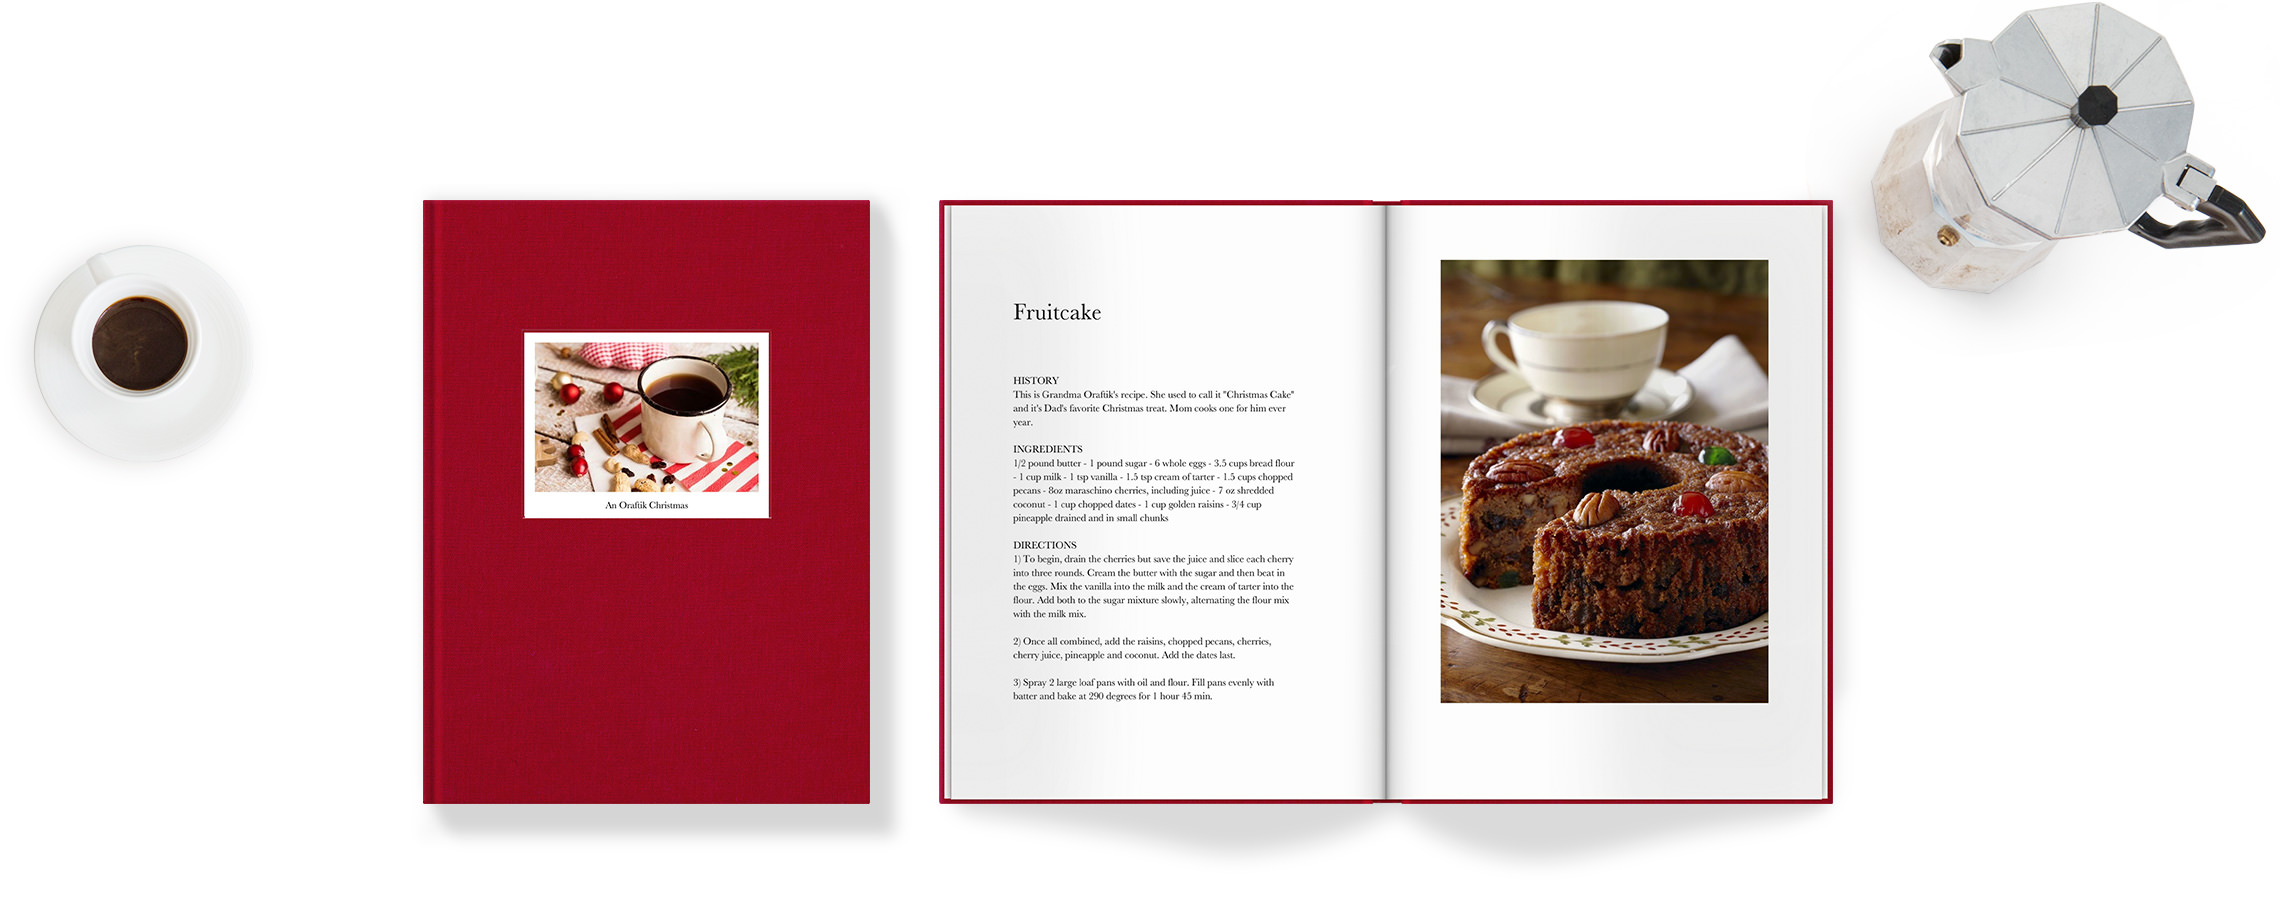 Classic photo book with family recipes.